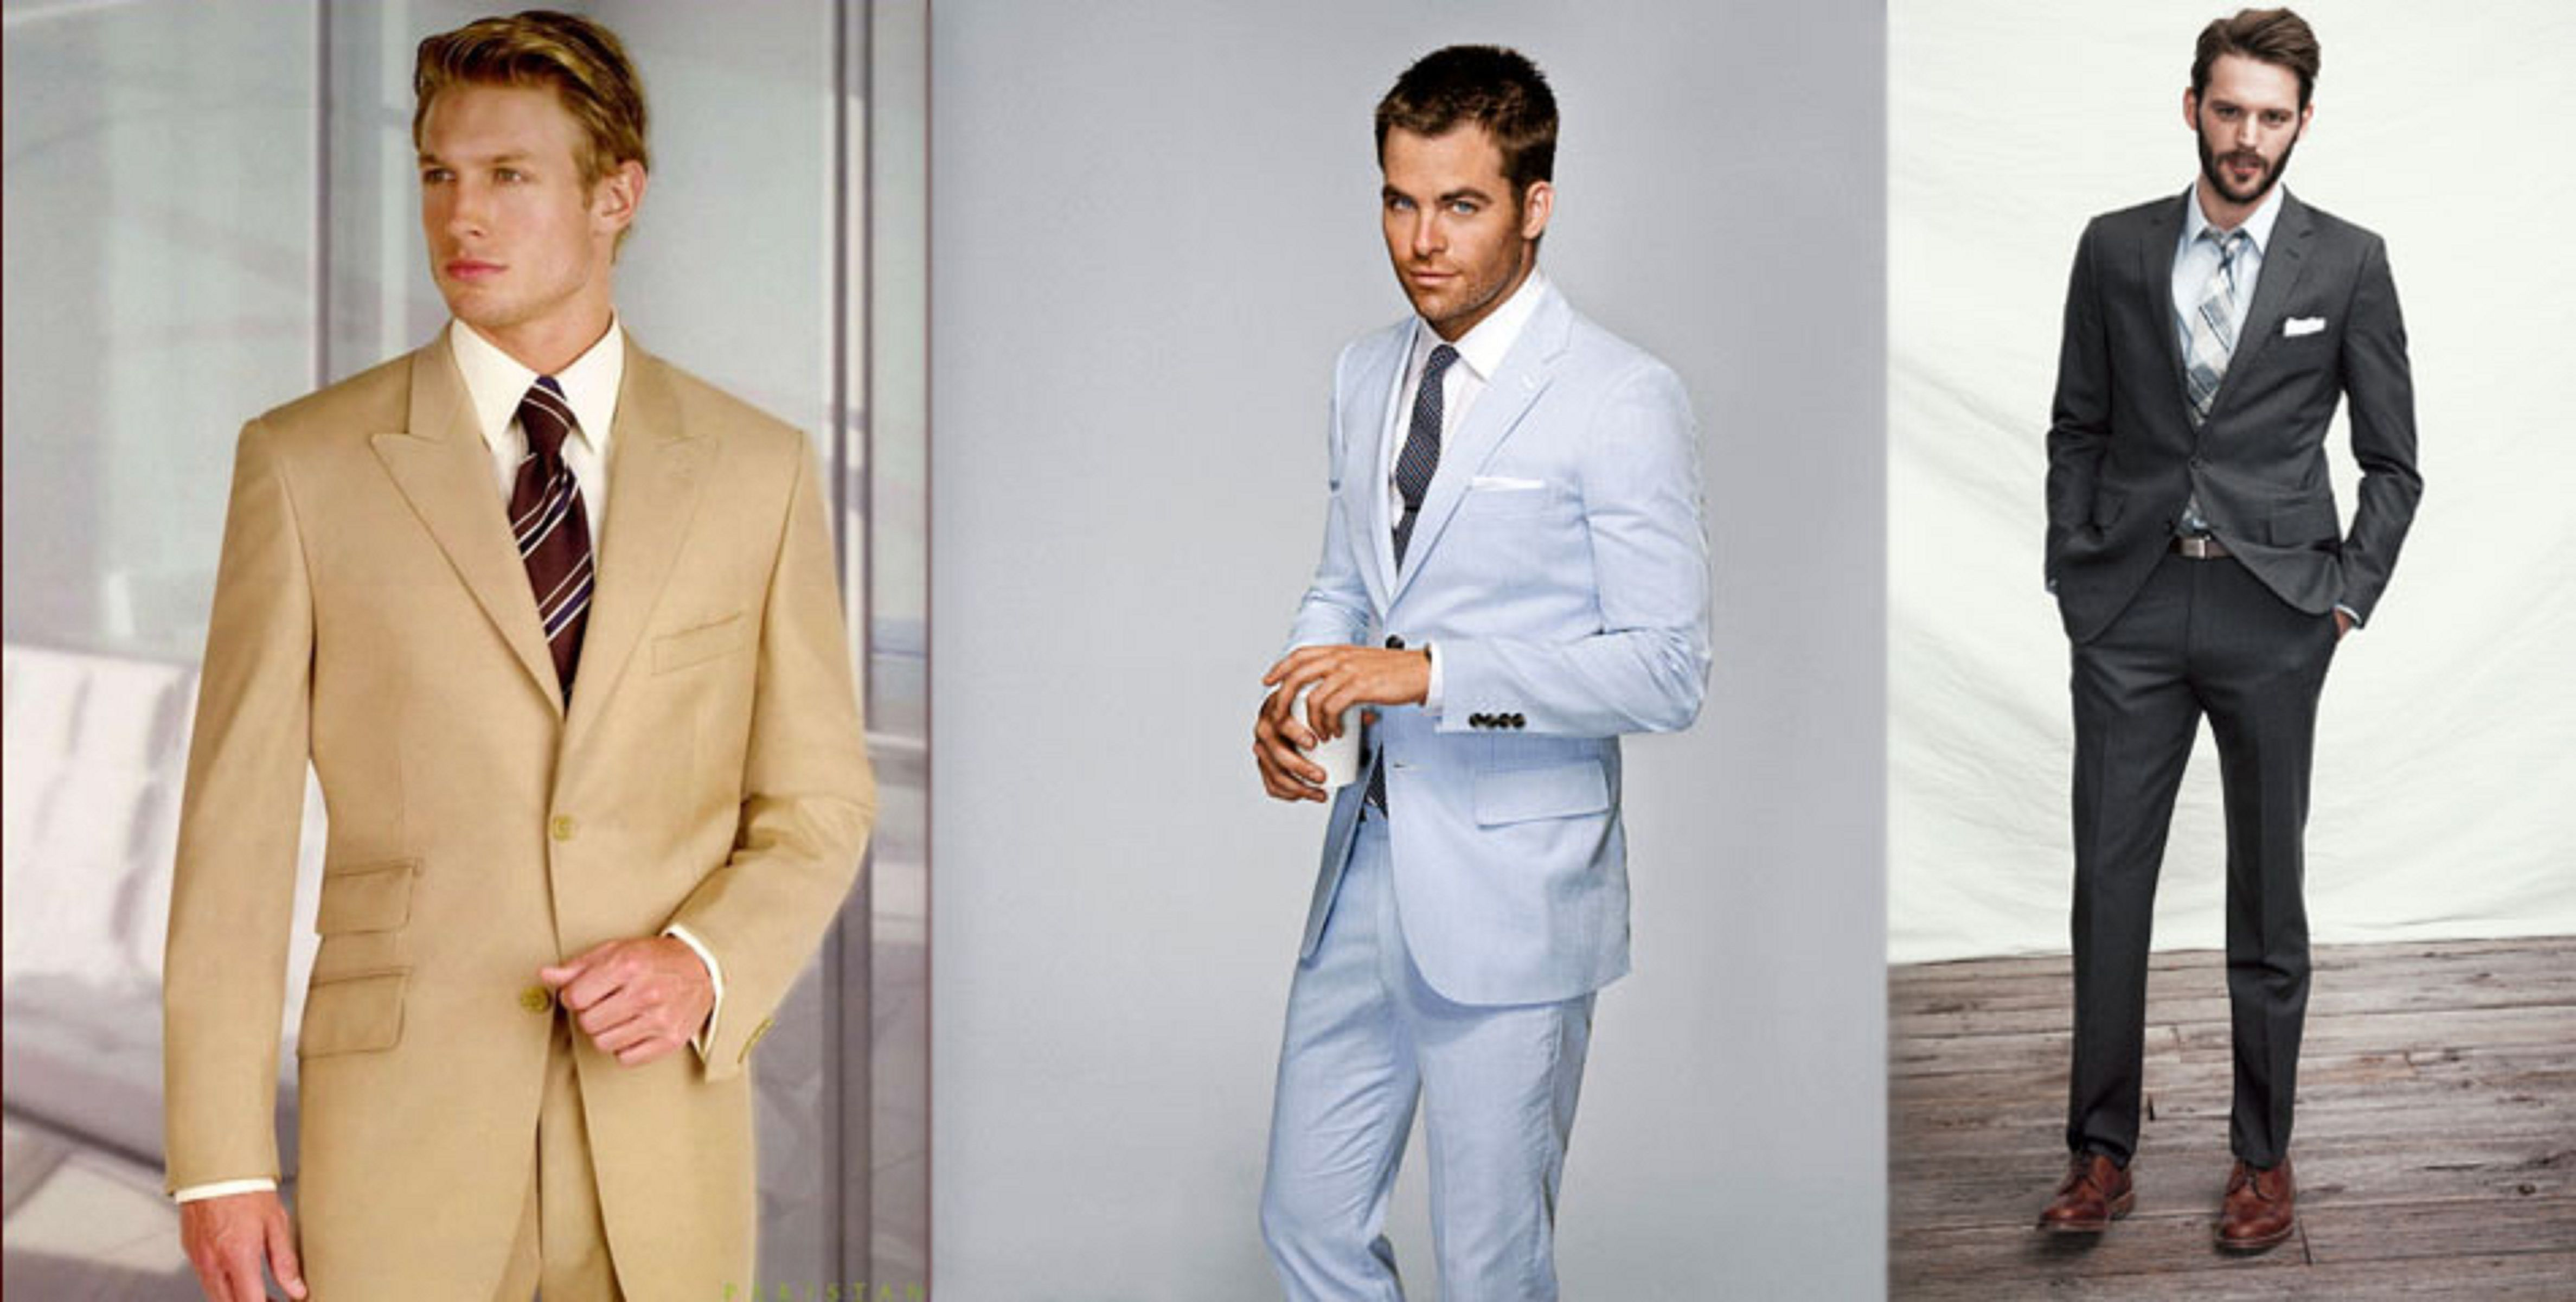 mens wedding attire - Google Search | Wedding Outfits | Pinterest ...